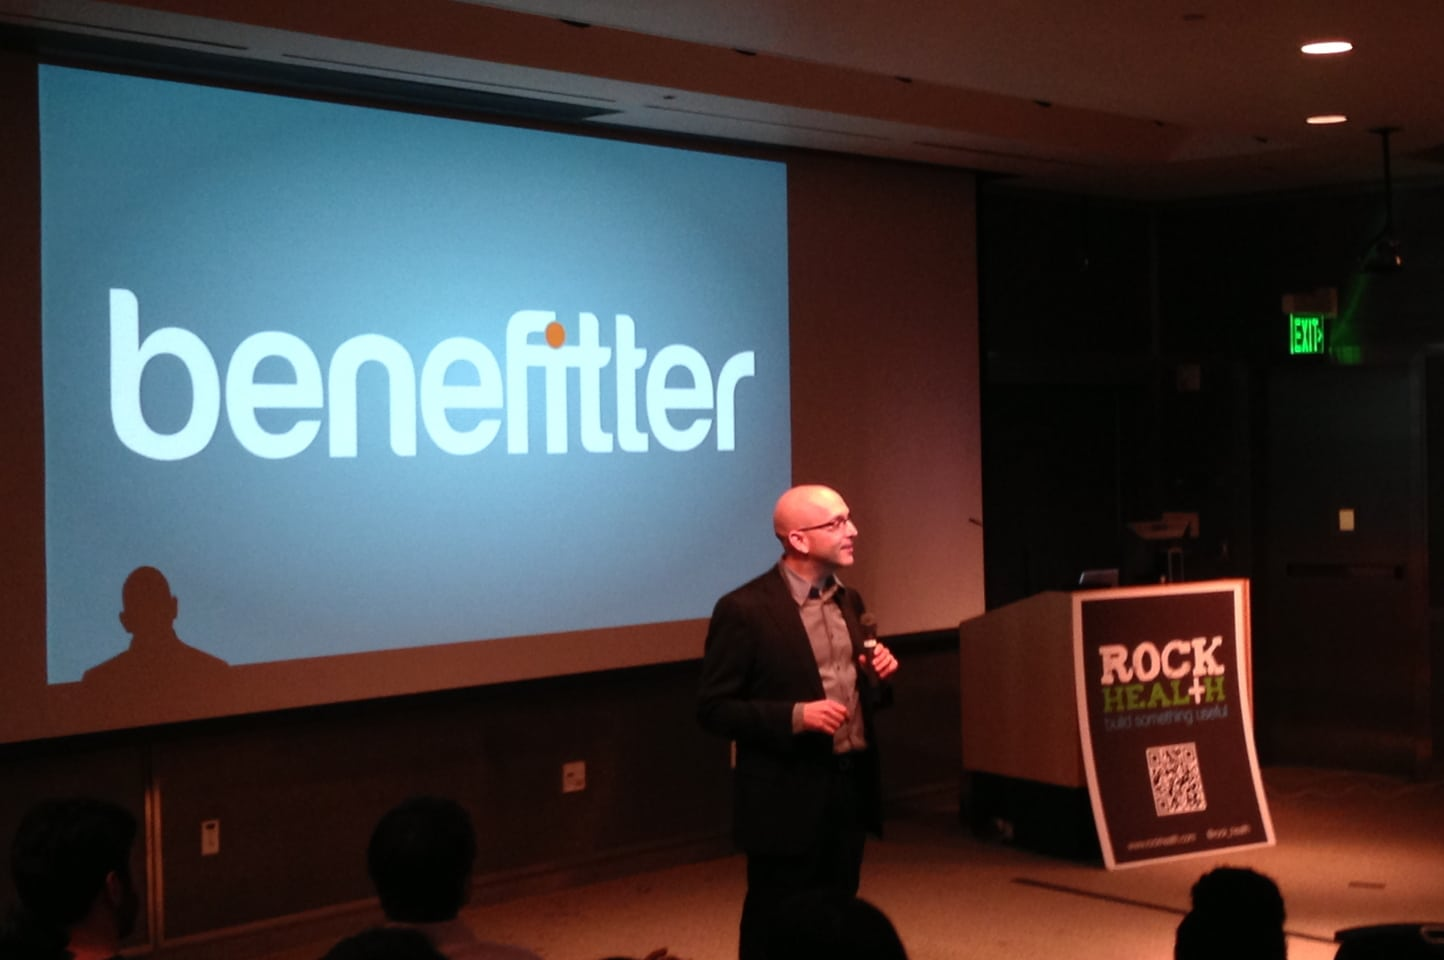 Benefitter (1 of 2)